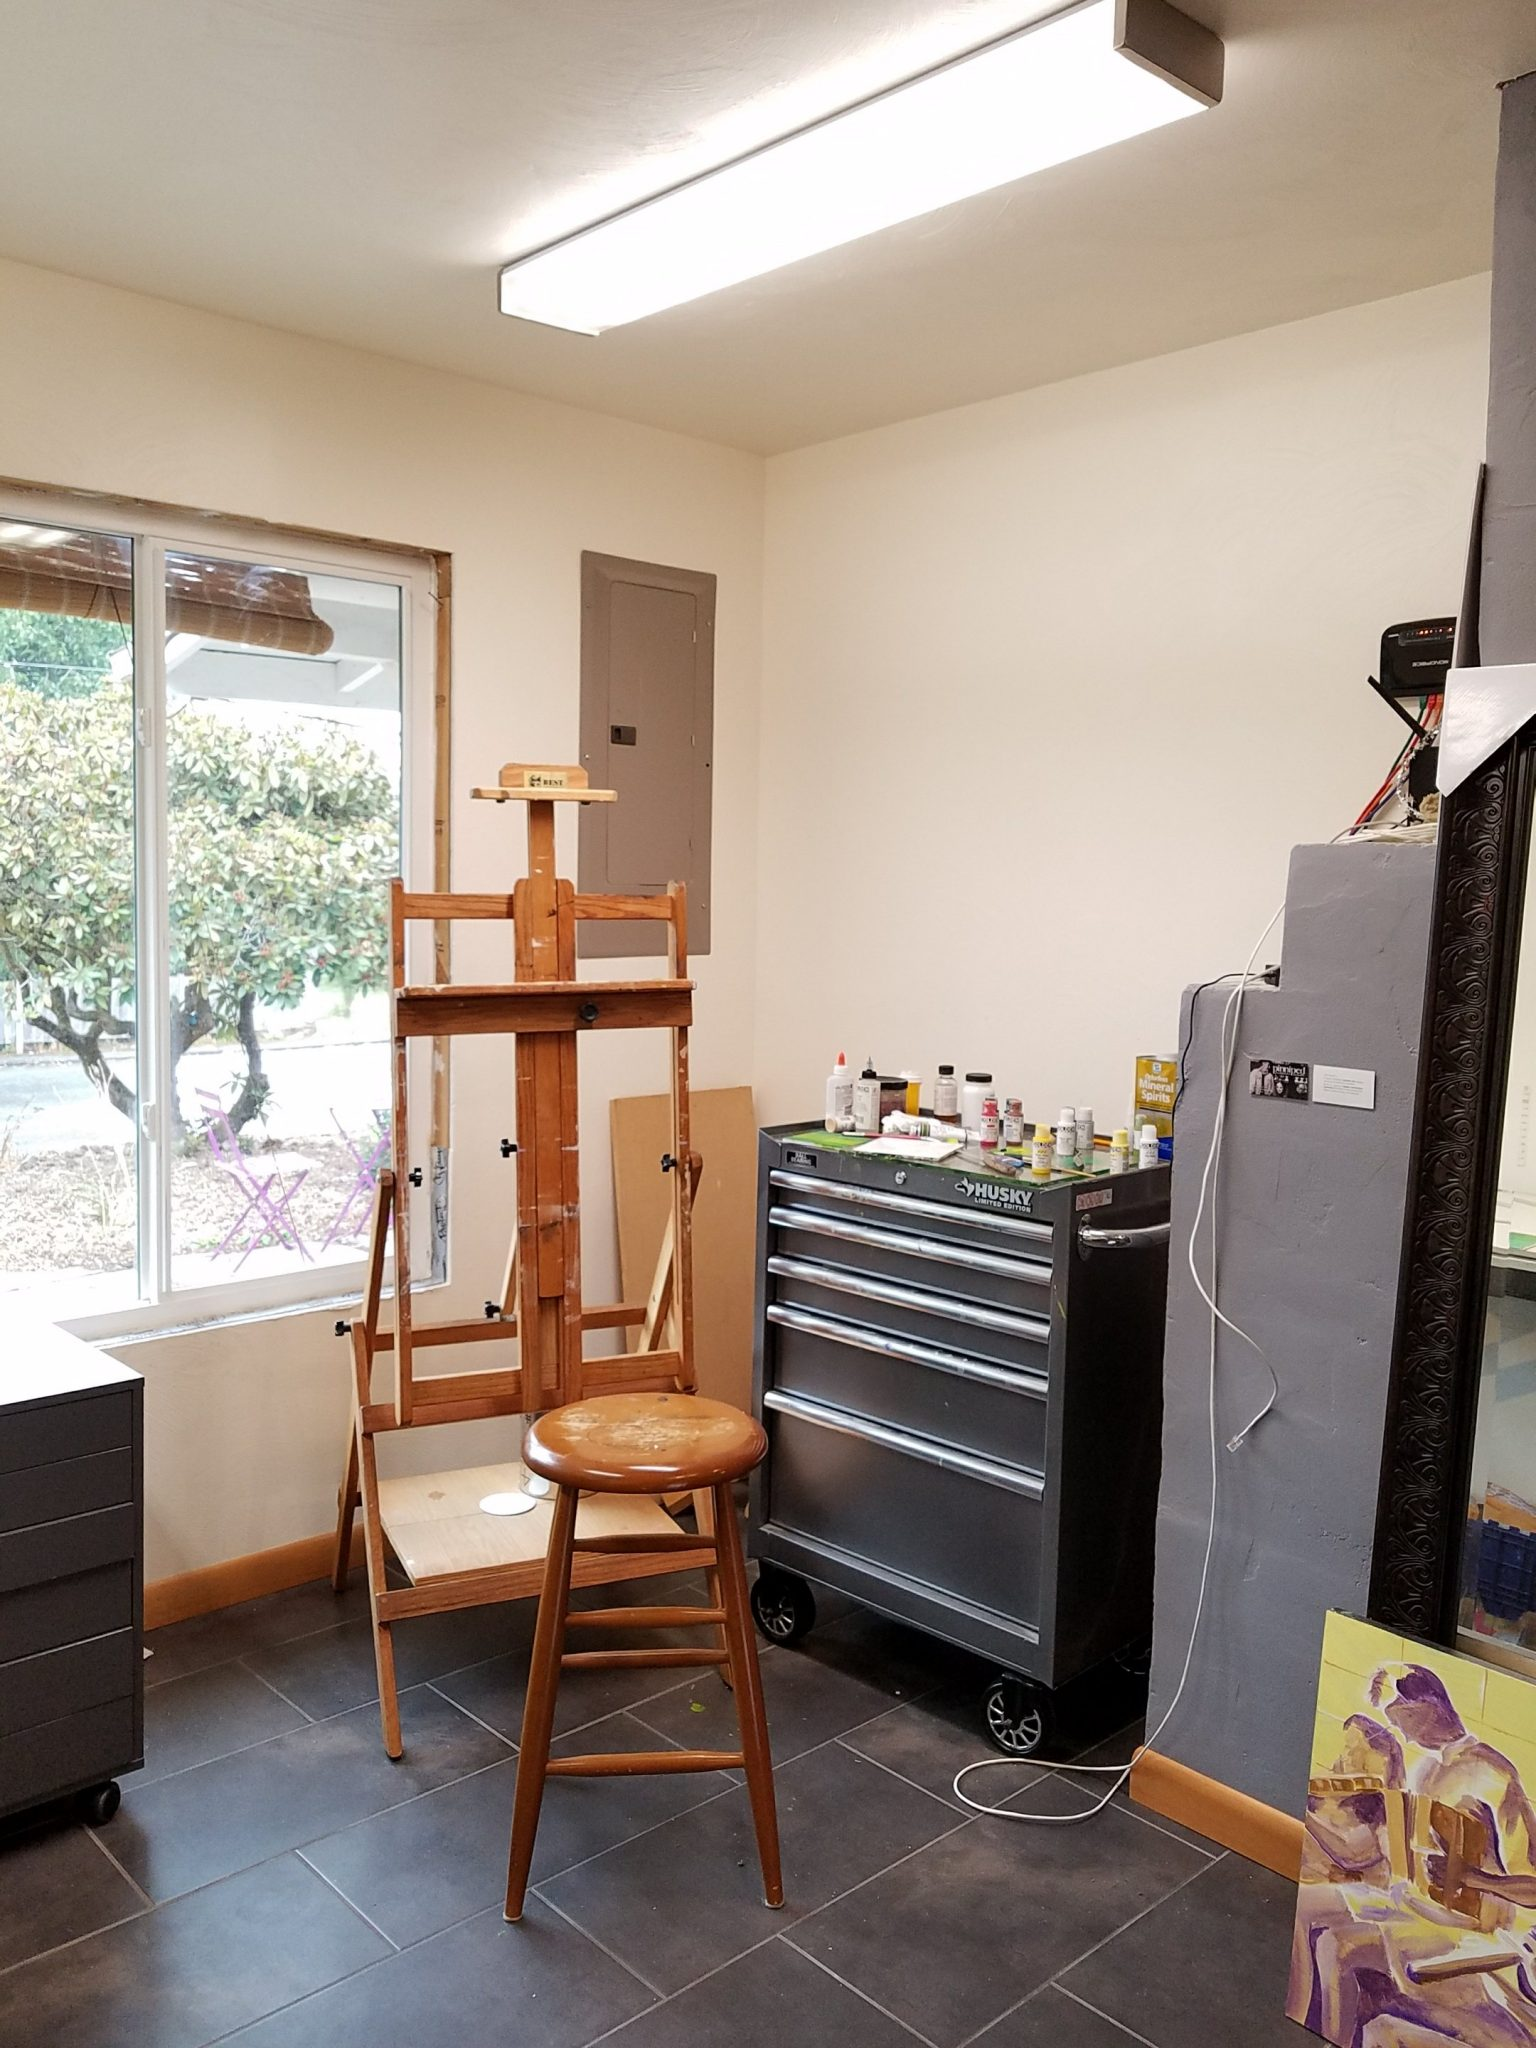 Photo of an artist's wooden easel, stool, and a large tool chest.